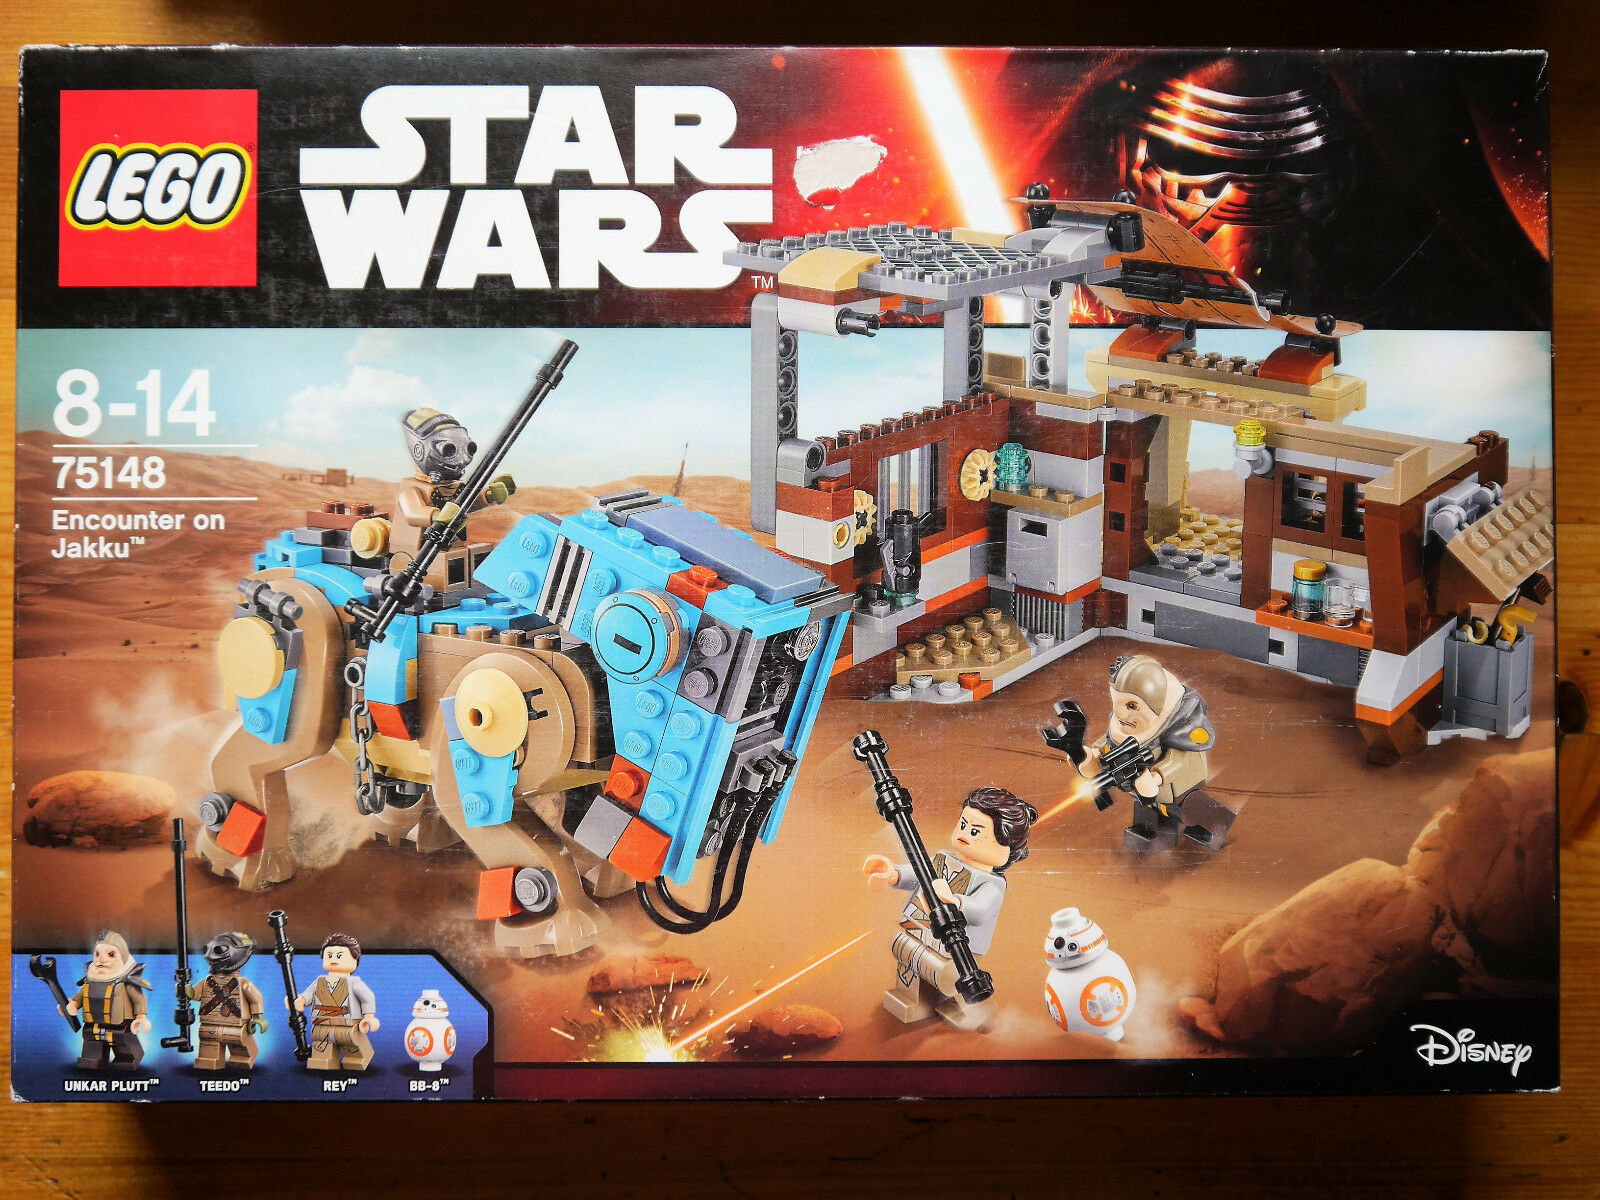 Star Wars-Encounter on Jakku-RALLIER plutt teedo Rey bb-8, Lego  75148 en boîte